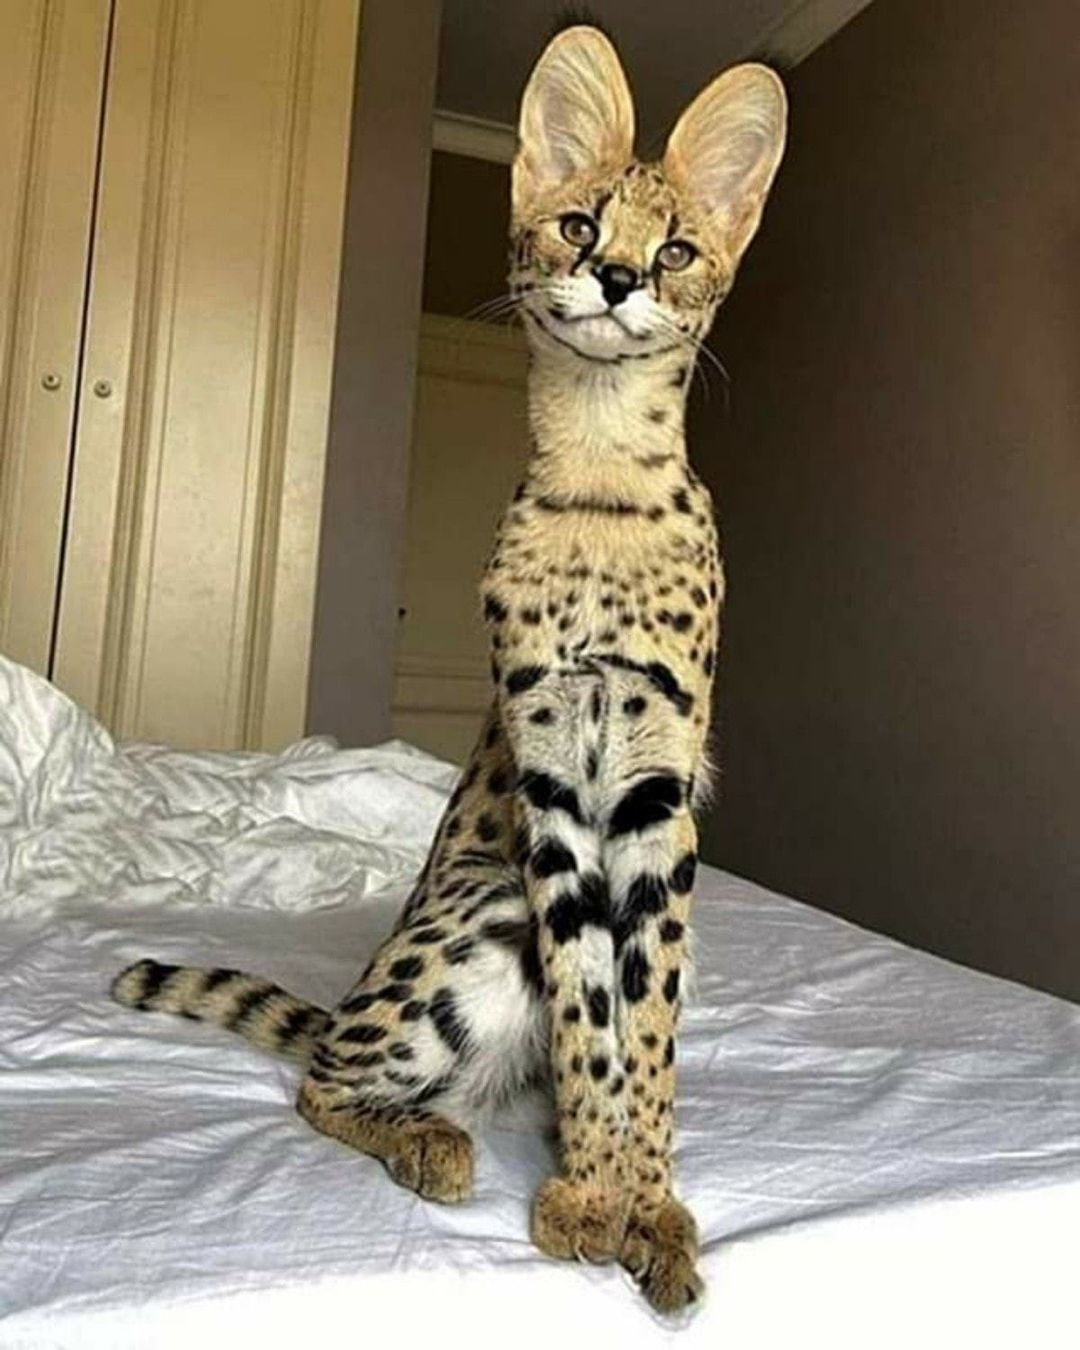 Differences between Bengal and Savannah cats